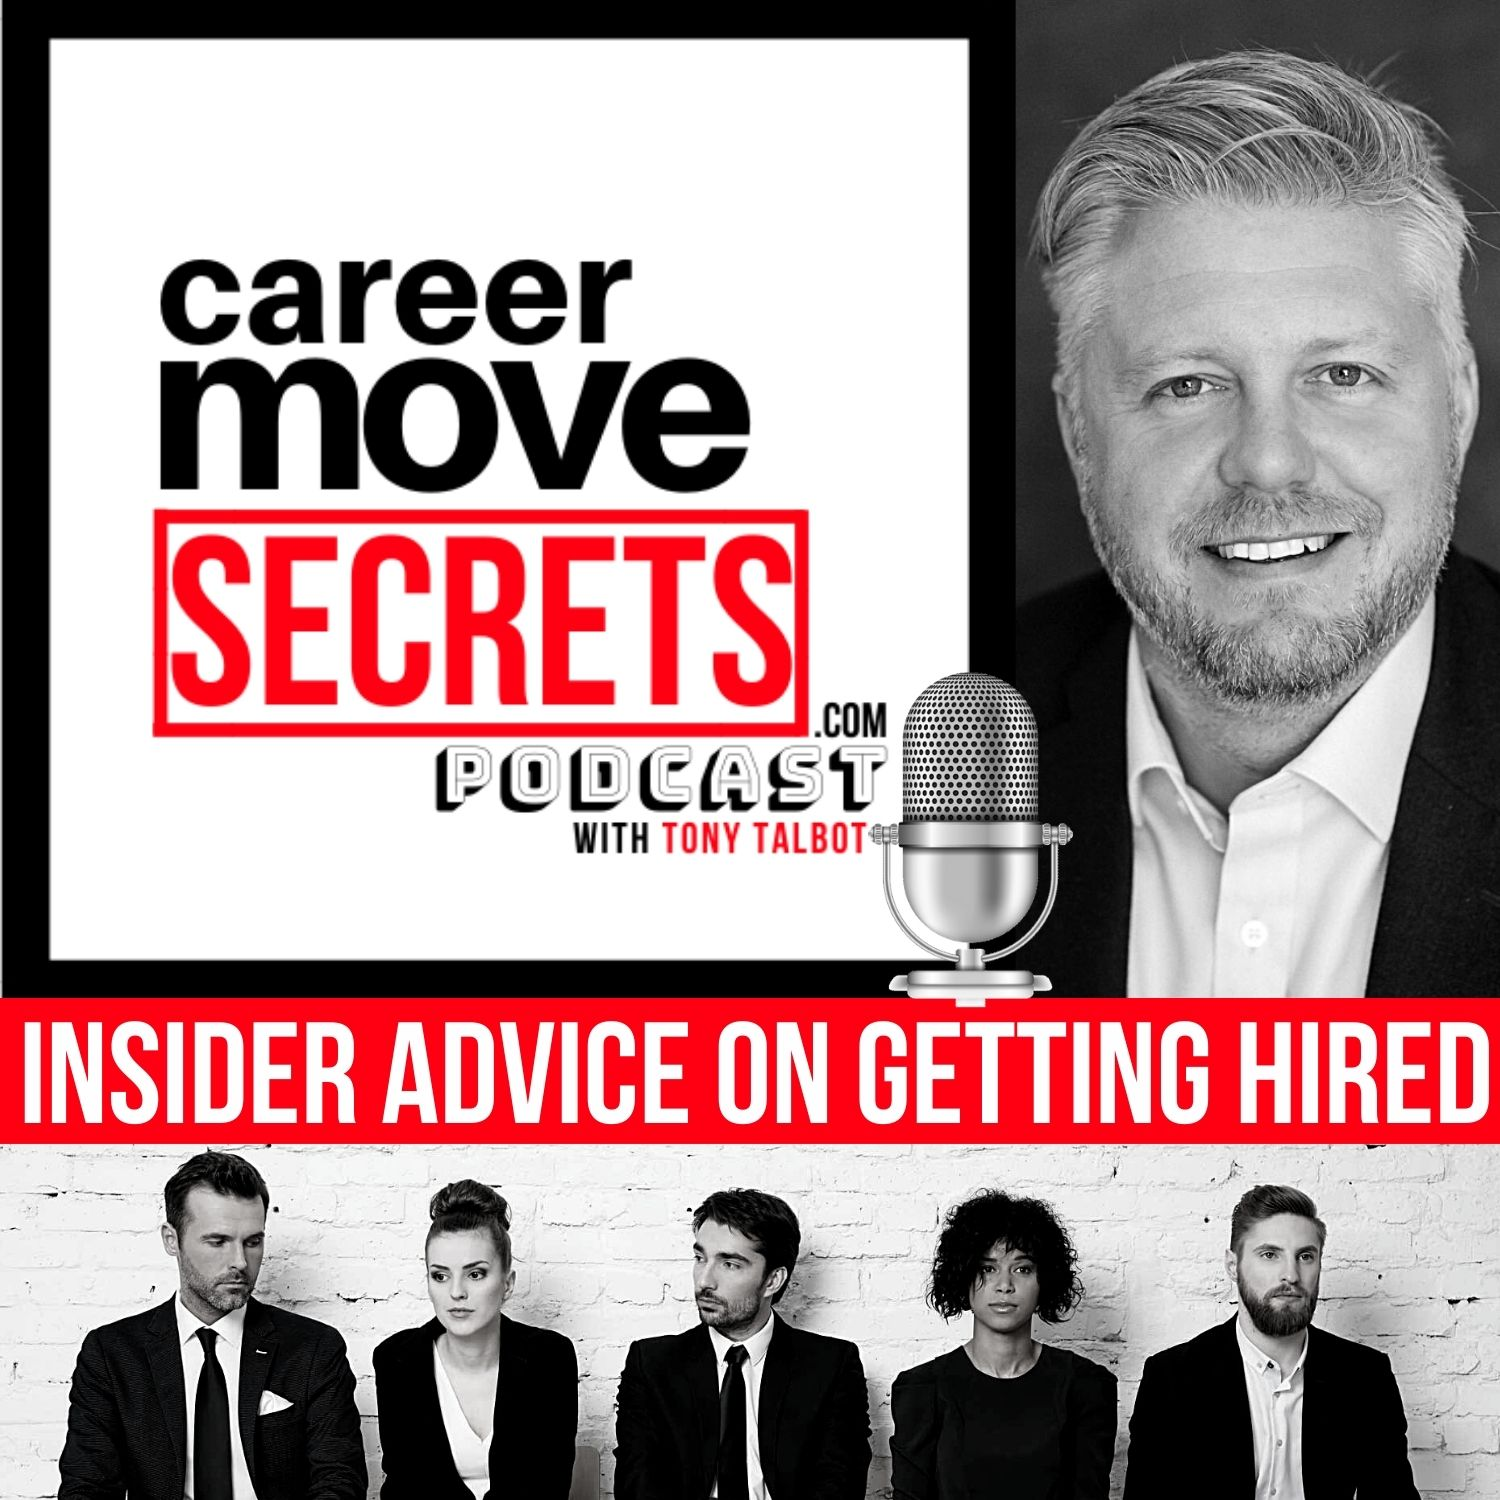 Artwork for podcast Career Move SECRETS with Tony Talbot